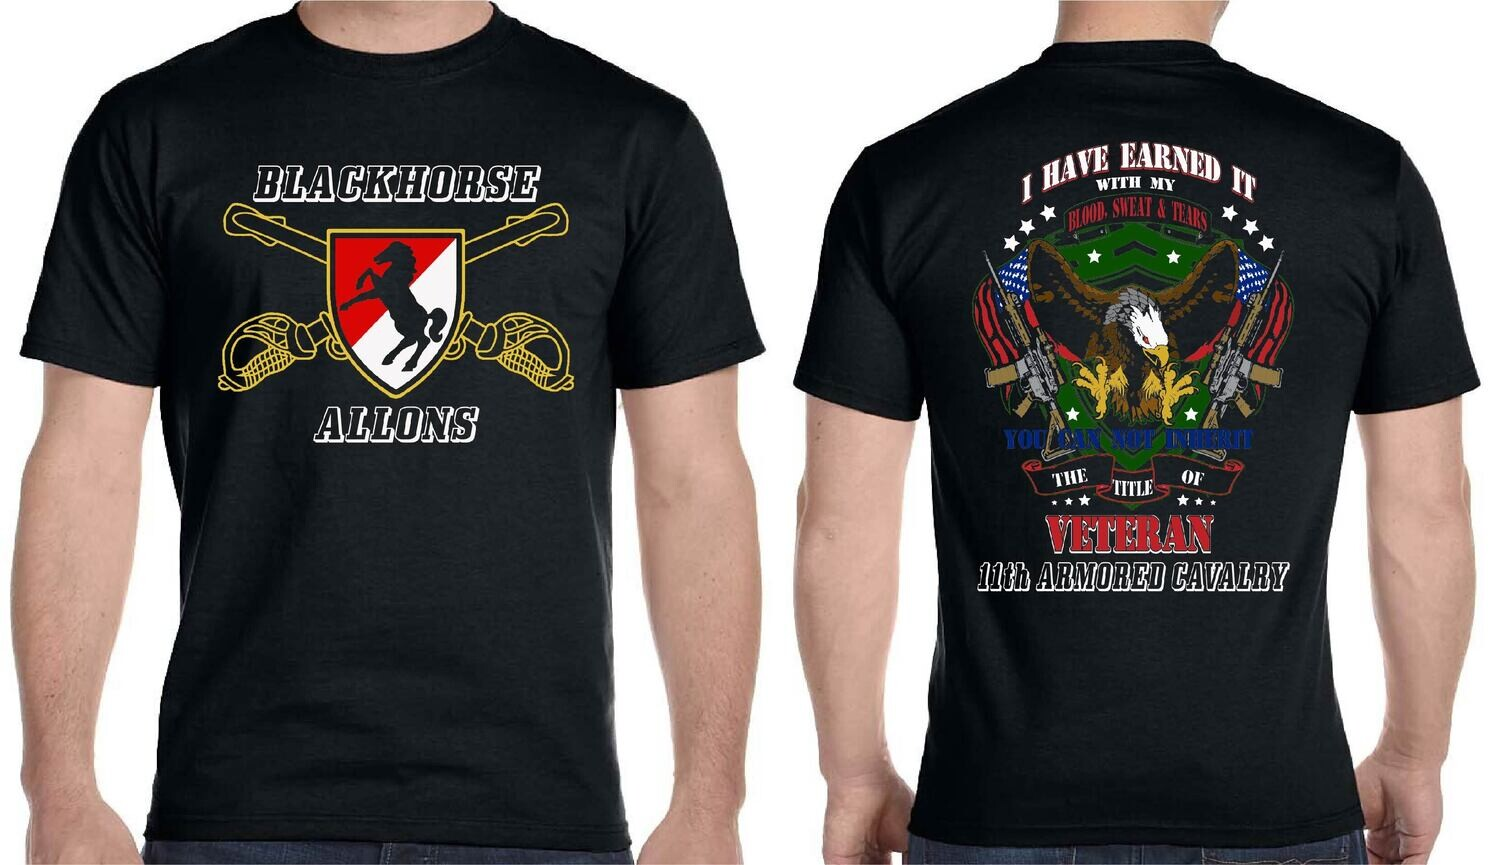 11th ACR ALLONS BLACKHORSE EARNED FREE SHIPPING